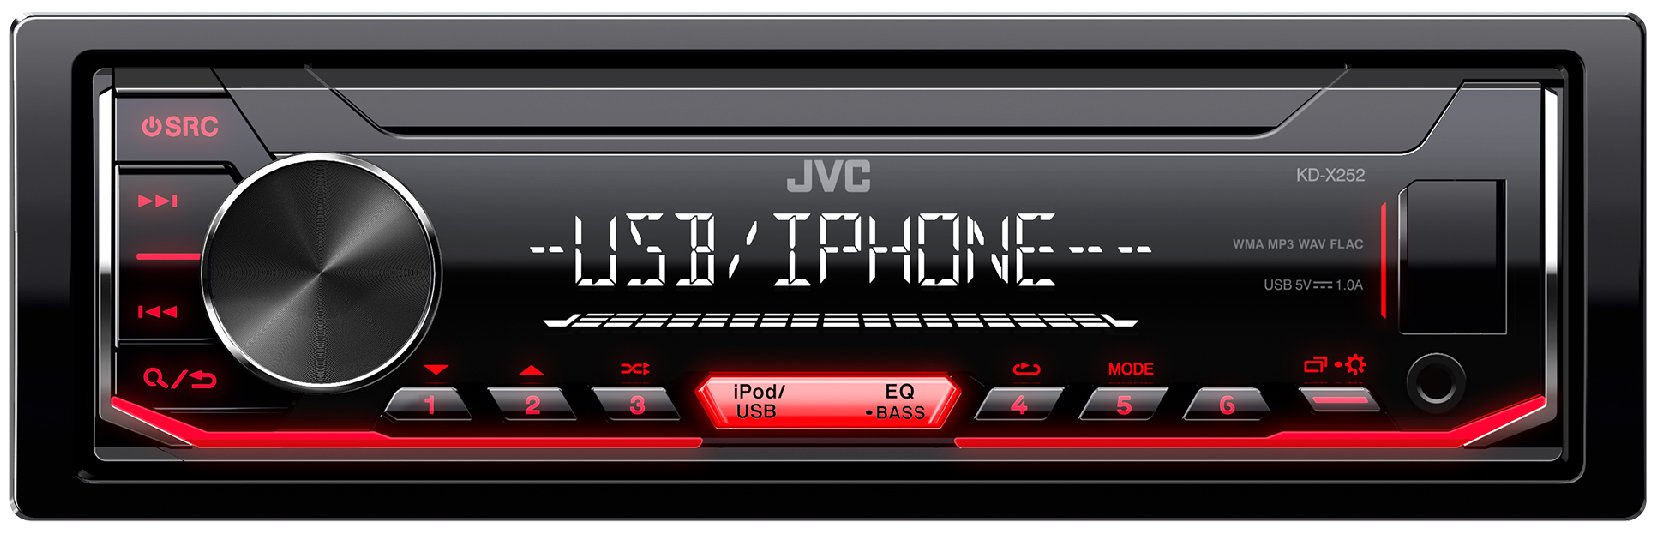 JVC-KD-X252-Digital-Media-Receiver-schwarz